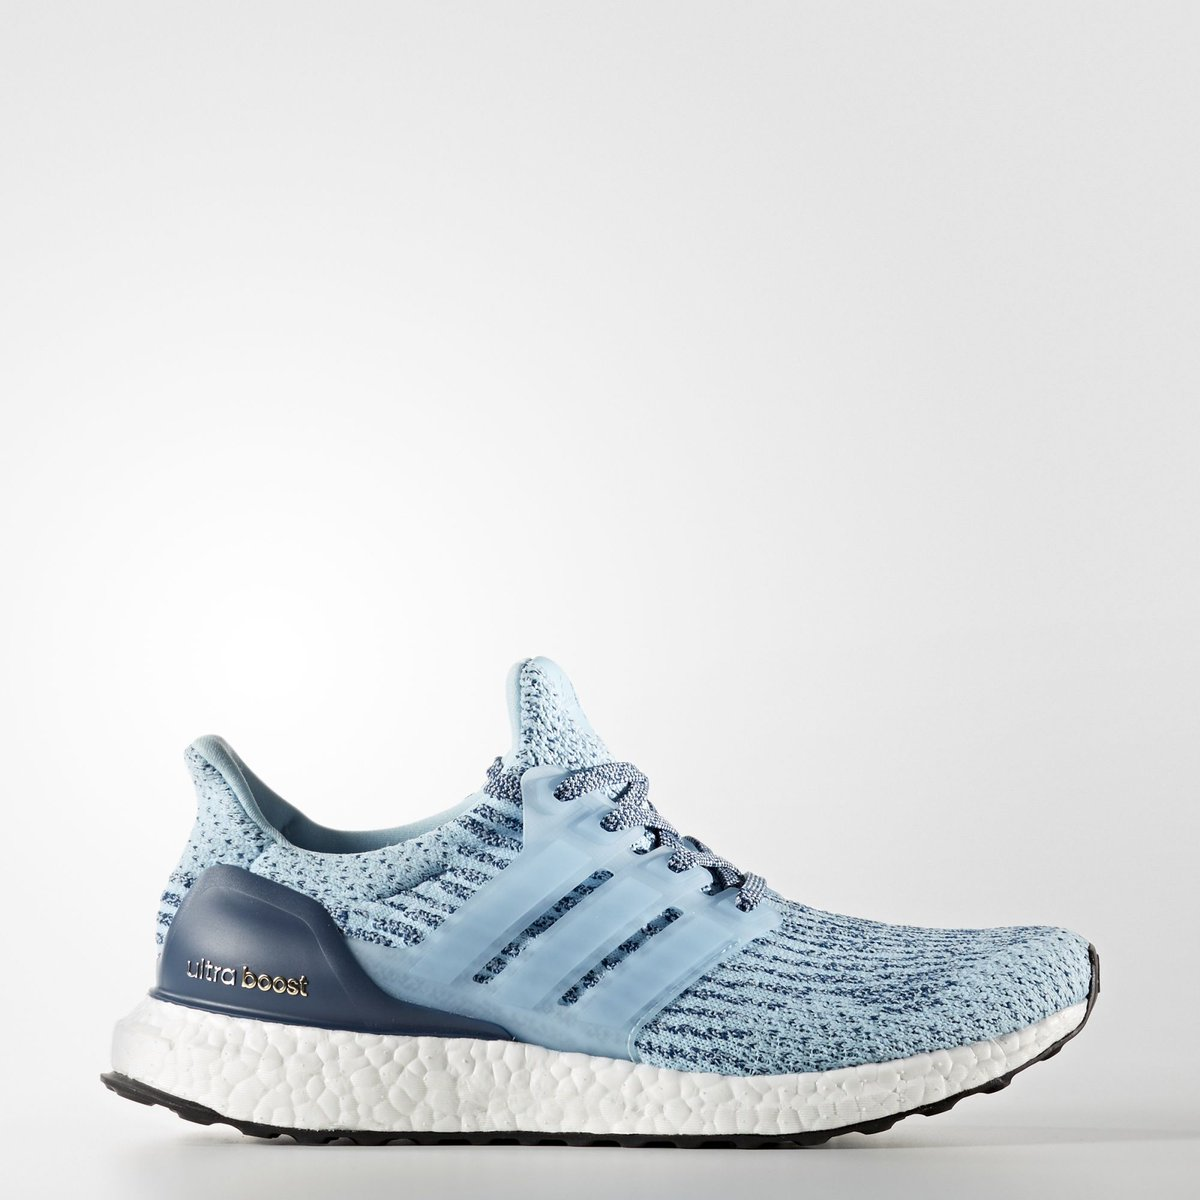 94473ead80069 spain popular adidas 3.0 oreo size 9.5 us ultra boost adidas trends 11da2  64ece  purchase adidas alerts on twitter now available on adidas us. adidas  womens ...